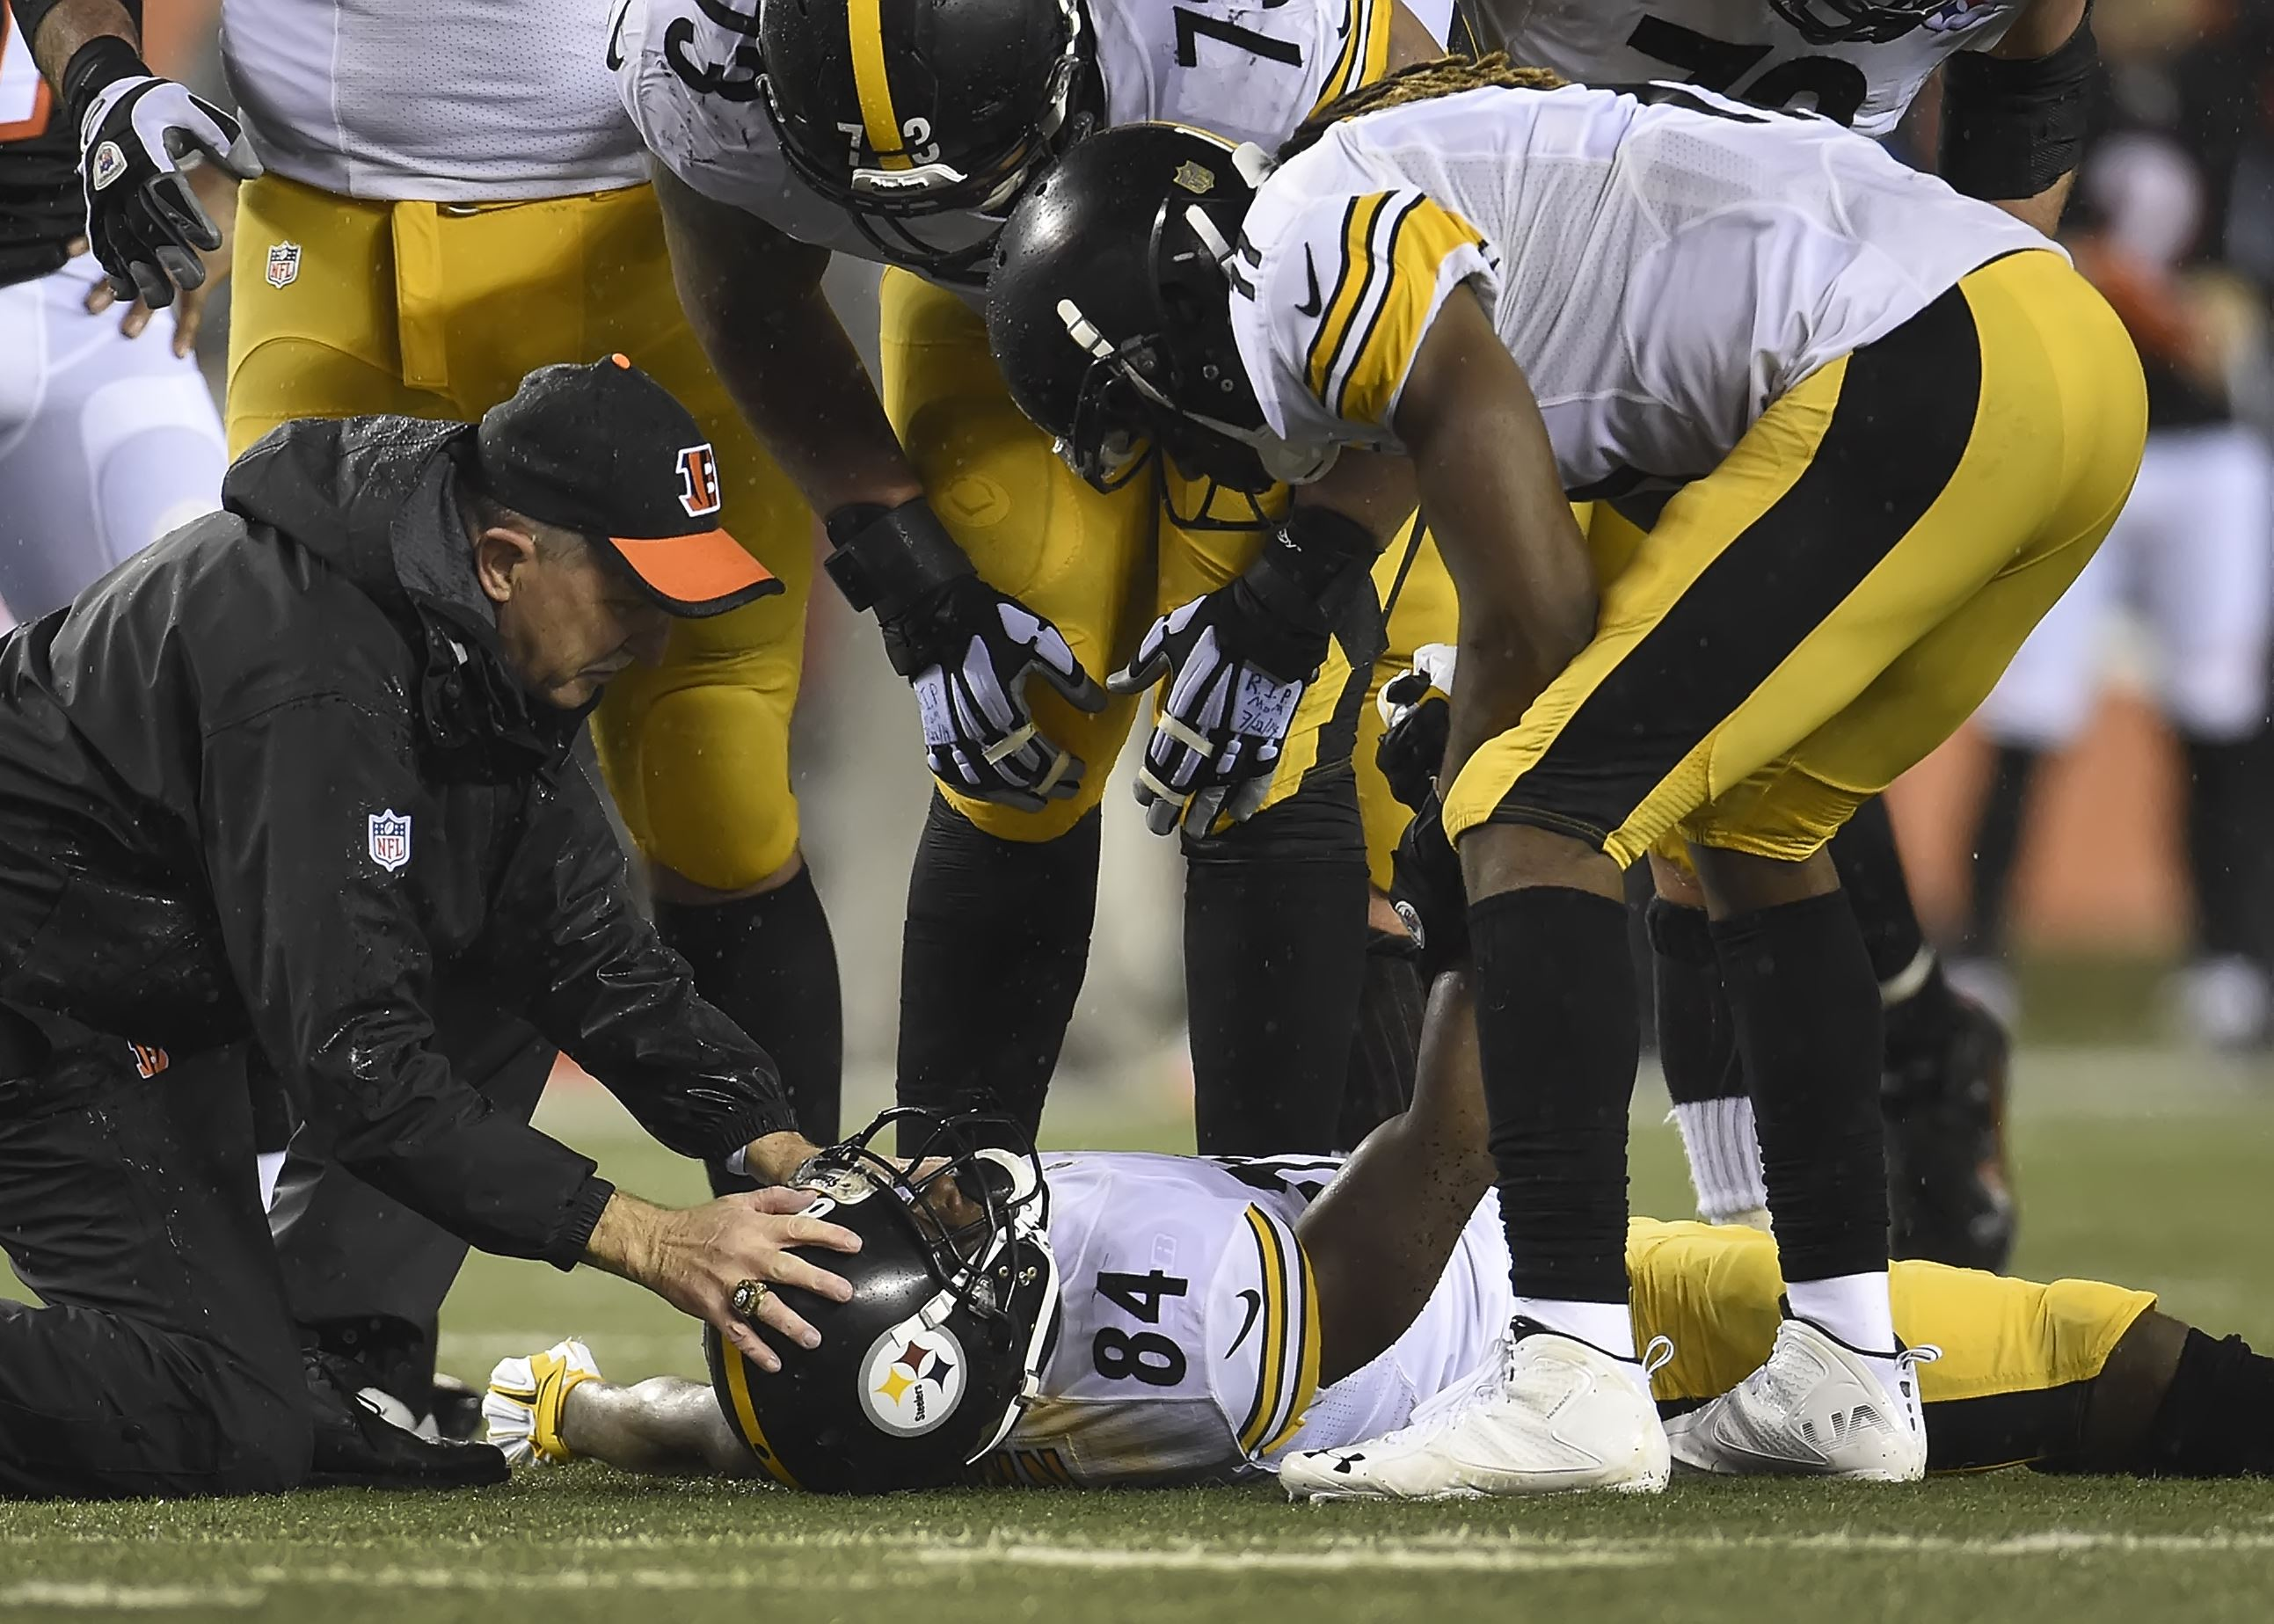 timeless design f9ba8 e3d35 AB says Vontaze Burfict was trying to 'kill me, steal my dreams'